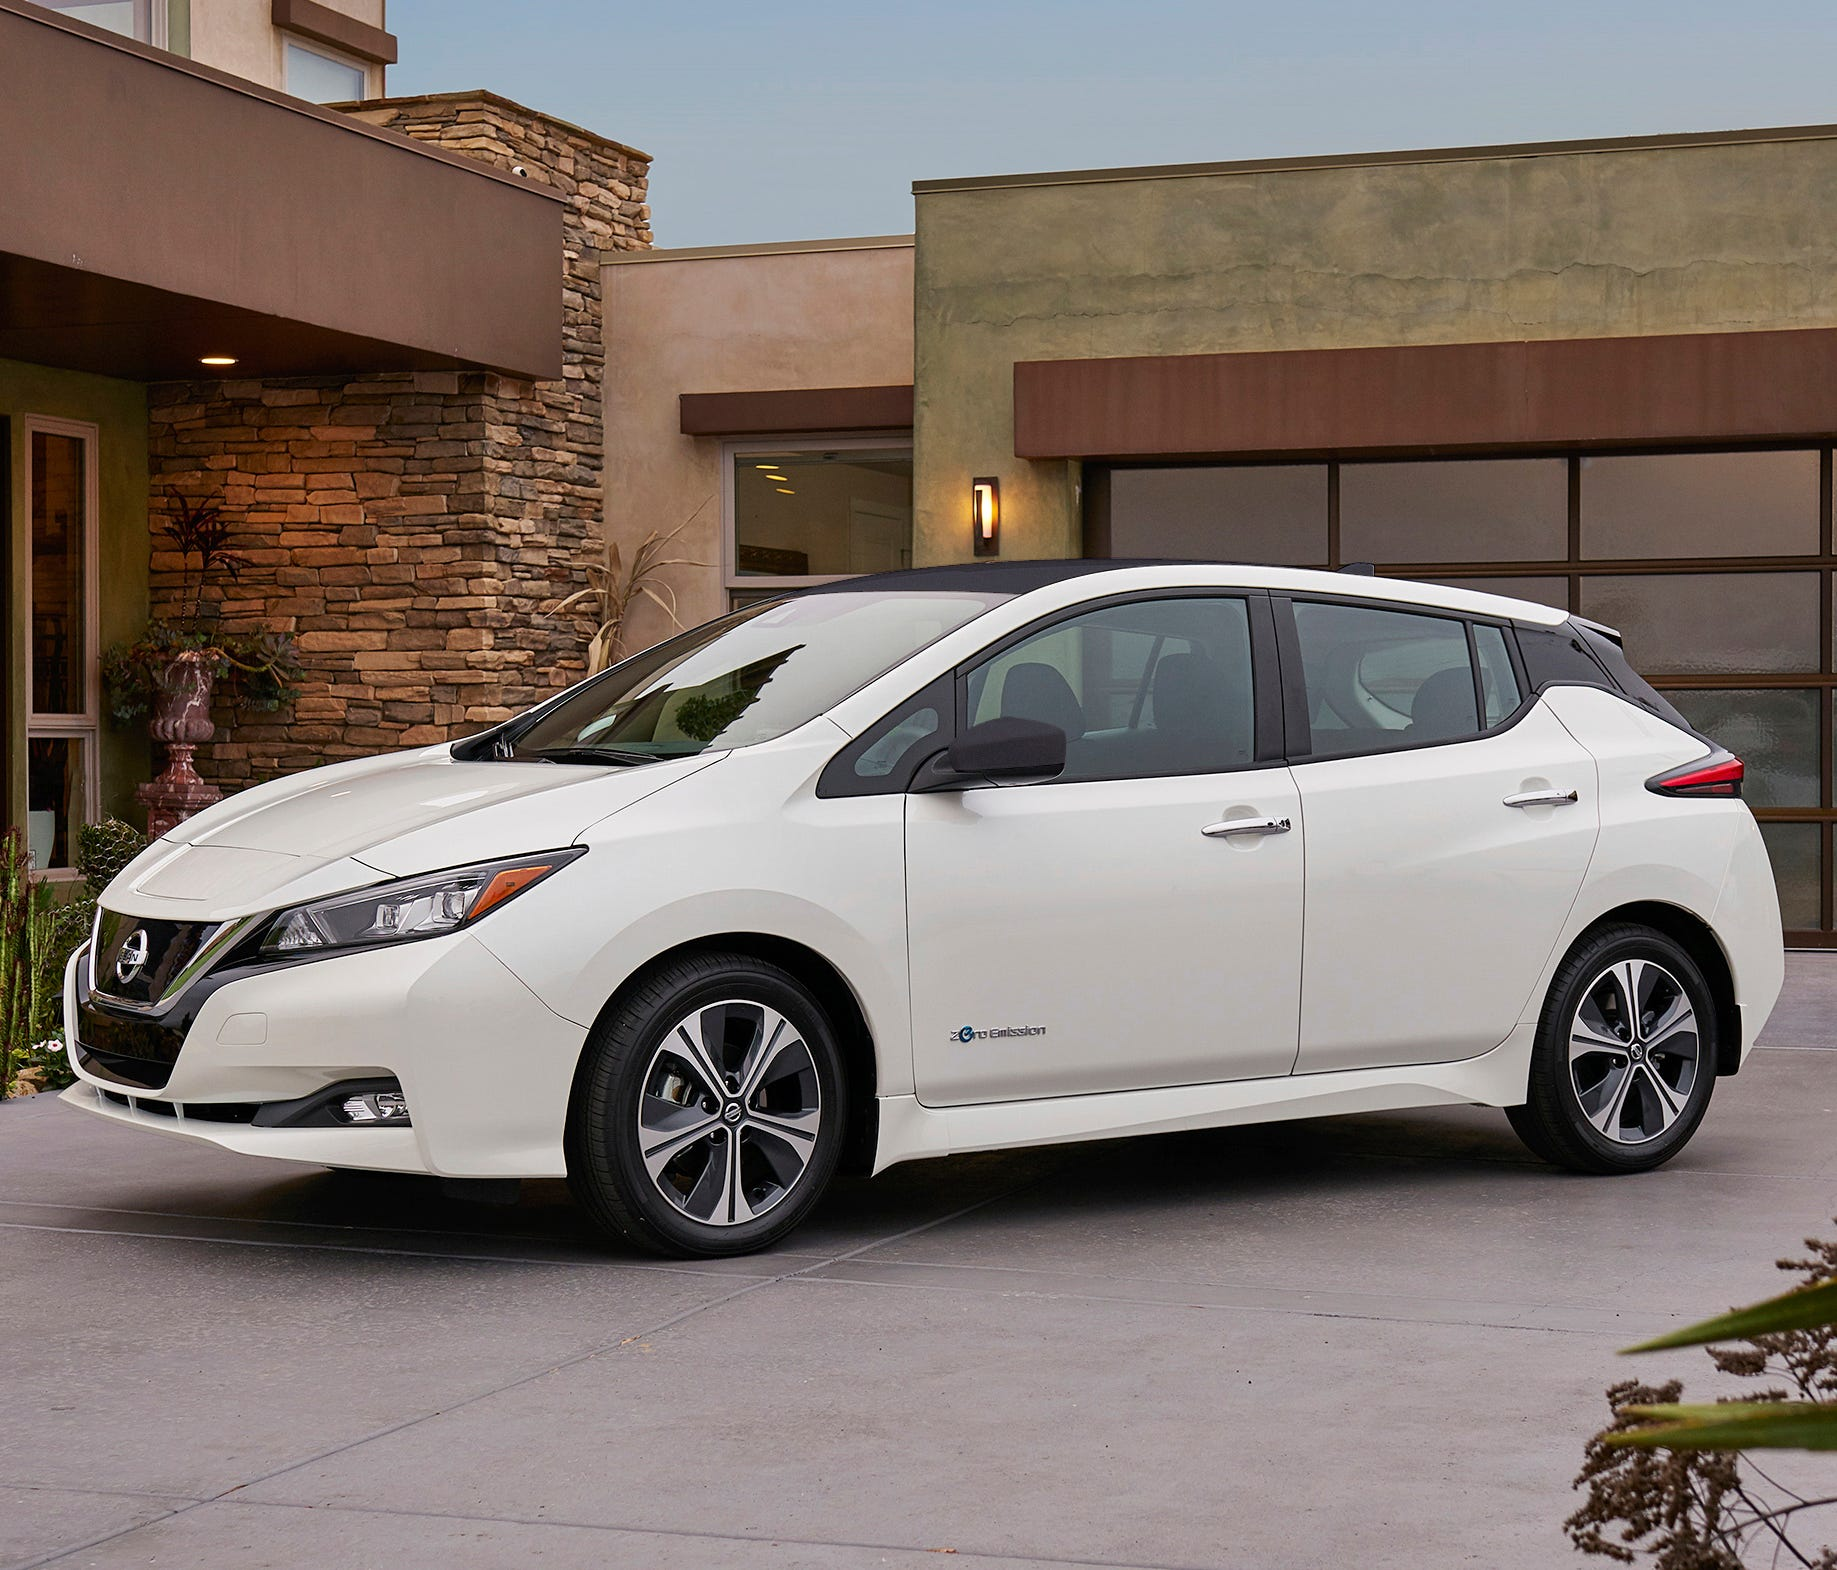 This photo provided by Nissan shows the 2018 Nissan Leaf, a redesigned version of one of the most popular electric vehicles ever produced. It goes on sale in early 2018, with a starting price just under $31,000.